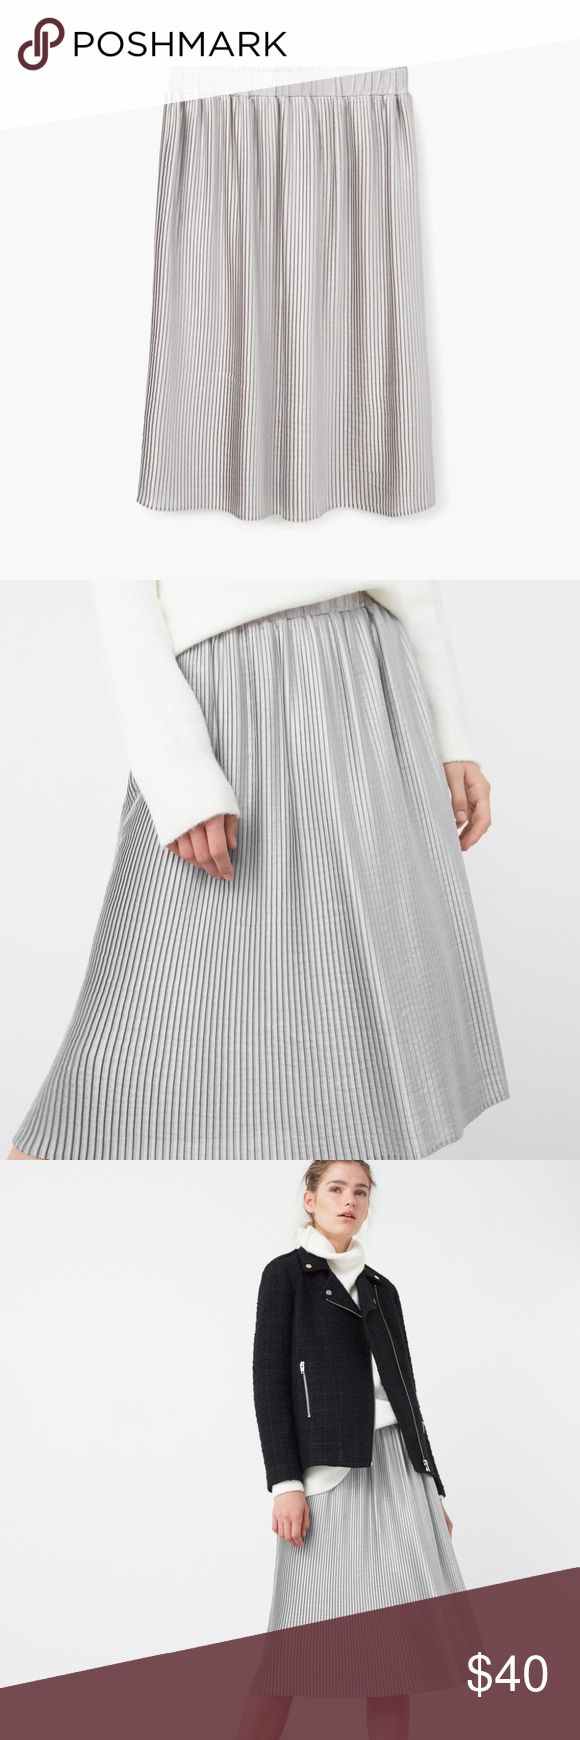 Mango Pleated Midi Skirt in Metallic Gorgeous pleated skirt - Wear with a chunky sweater and ankle boots for a super trendy fall look - Elastic waistband - Fully lined - Condition: Perfect, no holes, stains, or any signs of wear - Care: Hand wash and fry flat - Measurements: Waist: 13 3/4'', Length: 27'' - Smoke free, pet free home. Mango Skirts Midi